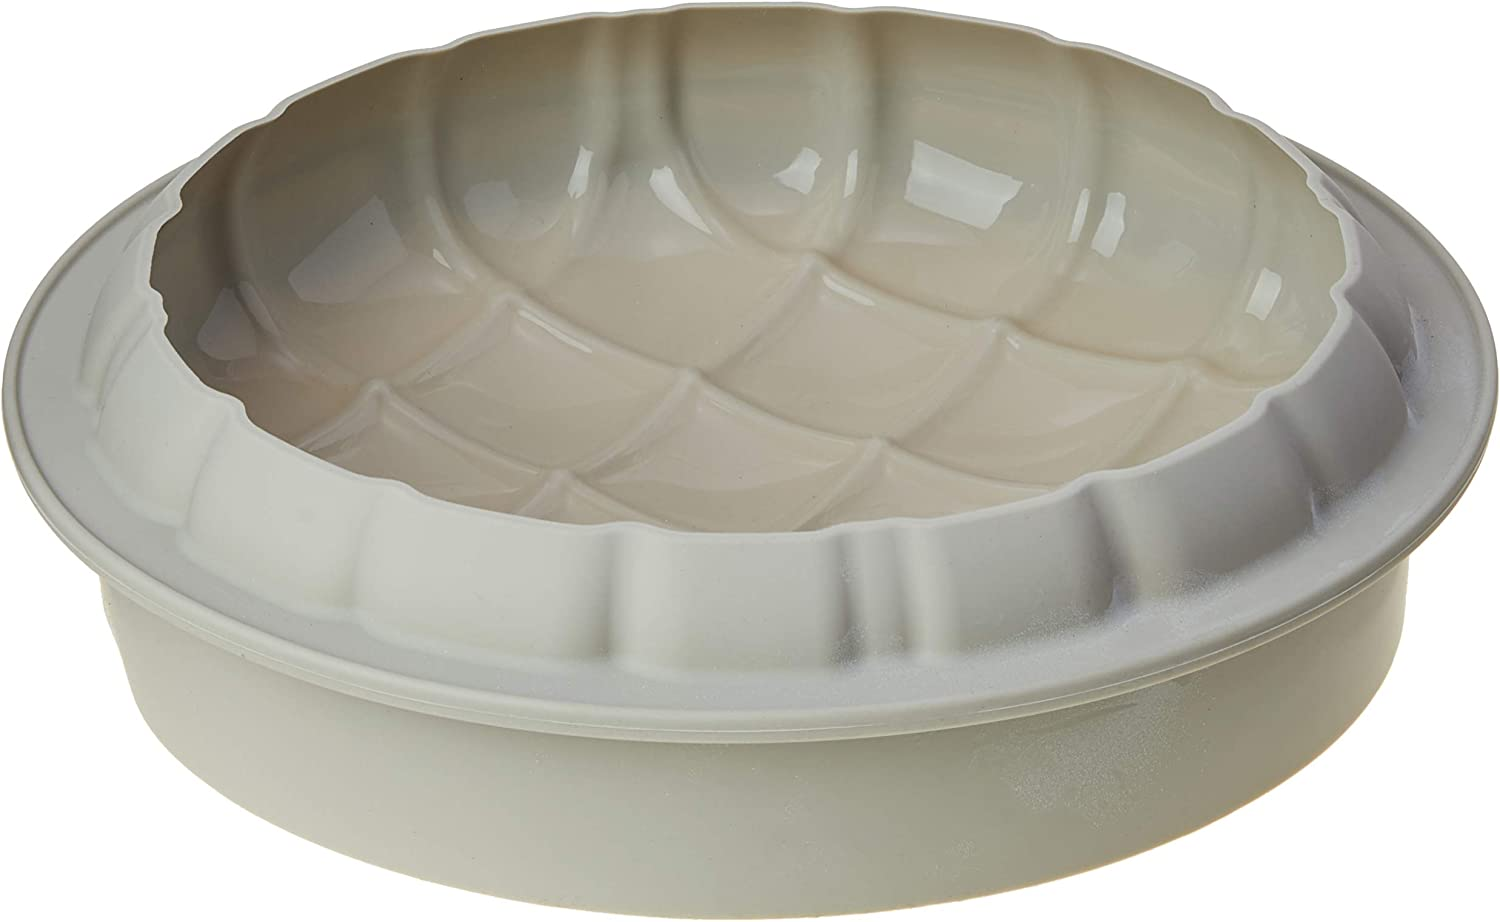 Silikomart Eleganza (Elegance) Silicone Mold, Flexible Cake Pan with 3D Tufted Detailing, Easily Unmolds, Oven, Microwave, Freezer and Dishwasher Safe, 57-1/2-Fluid Ounces, Made in Italy